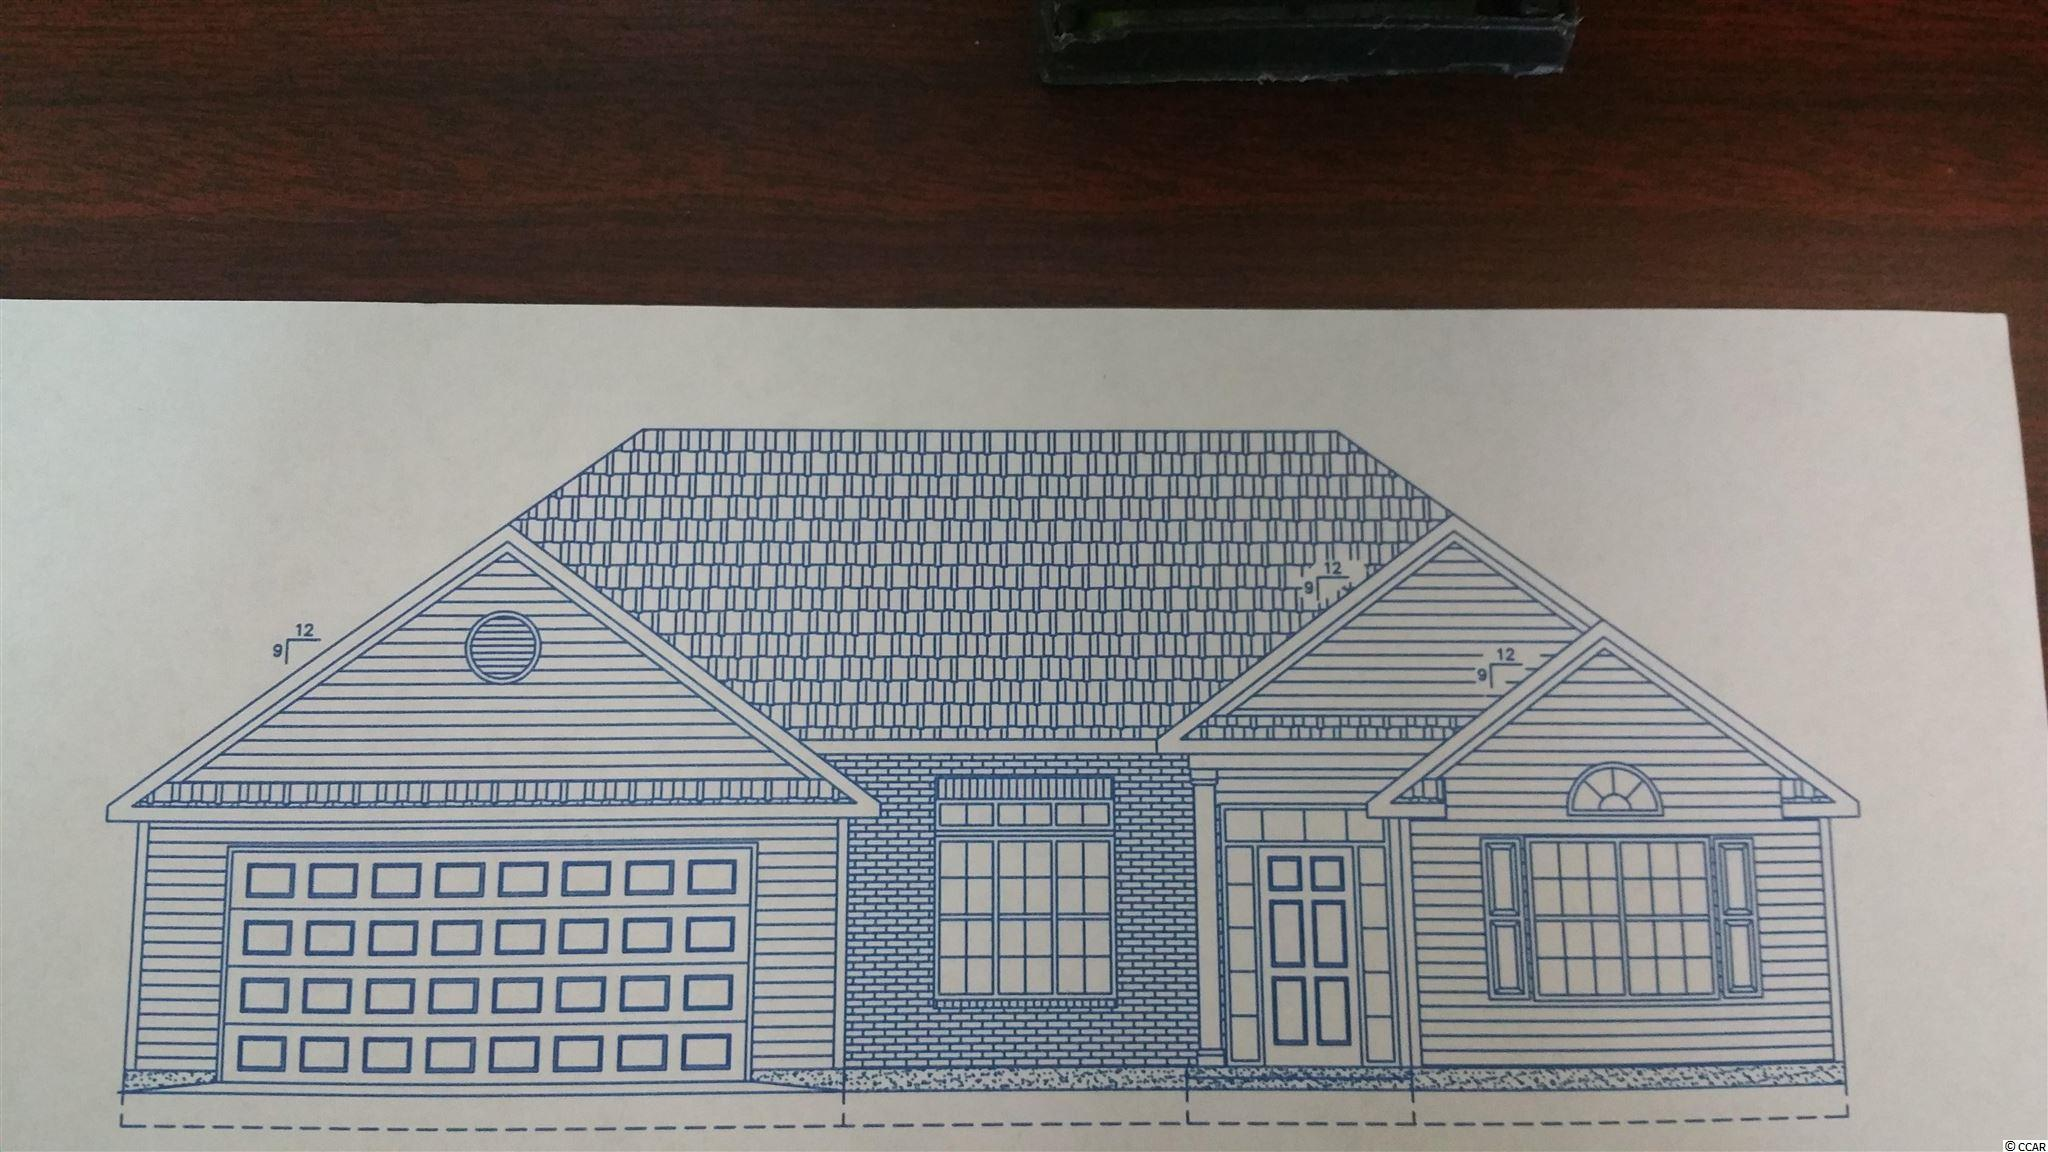 This lovely home is to be built, drop by the property anytime to check it out! Photos on listing are from home already built. This home is the last lot of 6 to be built in the desirable, established community of Country Club Landing, on Country Club Drive in the city of Conway. Drawing of the floorplan for this home is a rendering of a previously built home. No lot premiums for this beautiful lot. Call today to start LIVING YOUR COASTAL LIFE, just 18 miles from the BLUE ATLANTIC OCEAN, in sunny South Carolina!